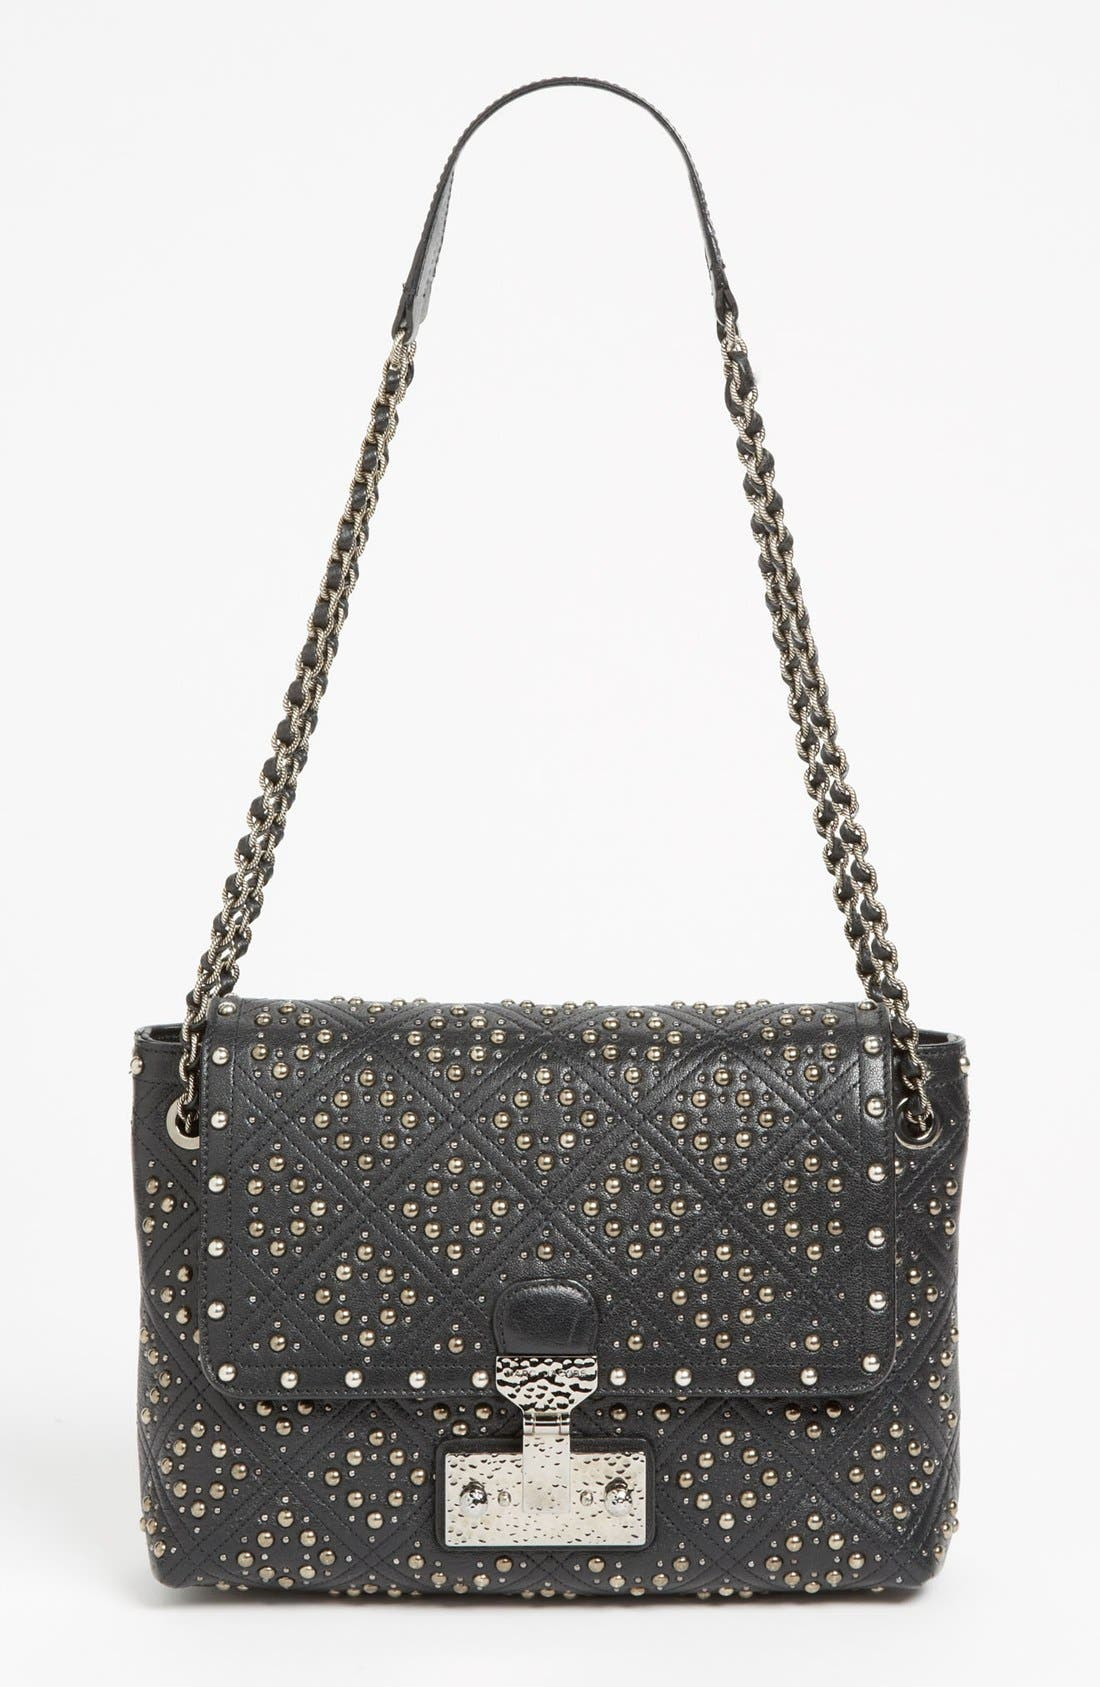 Alternate Image 1 Selected - MARC JACOBS 'Baroque Studs Single - Large' Leather Crossbody Bag